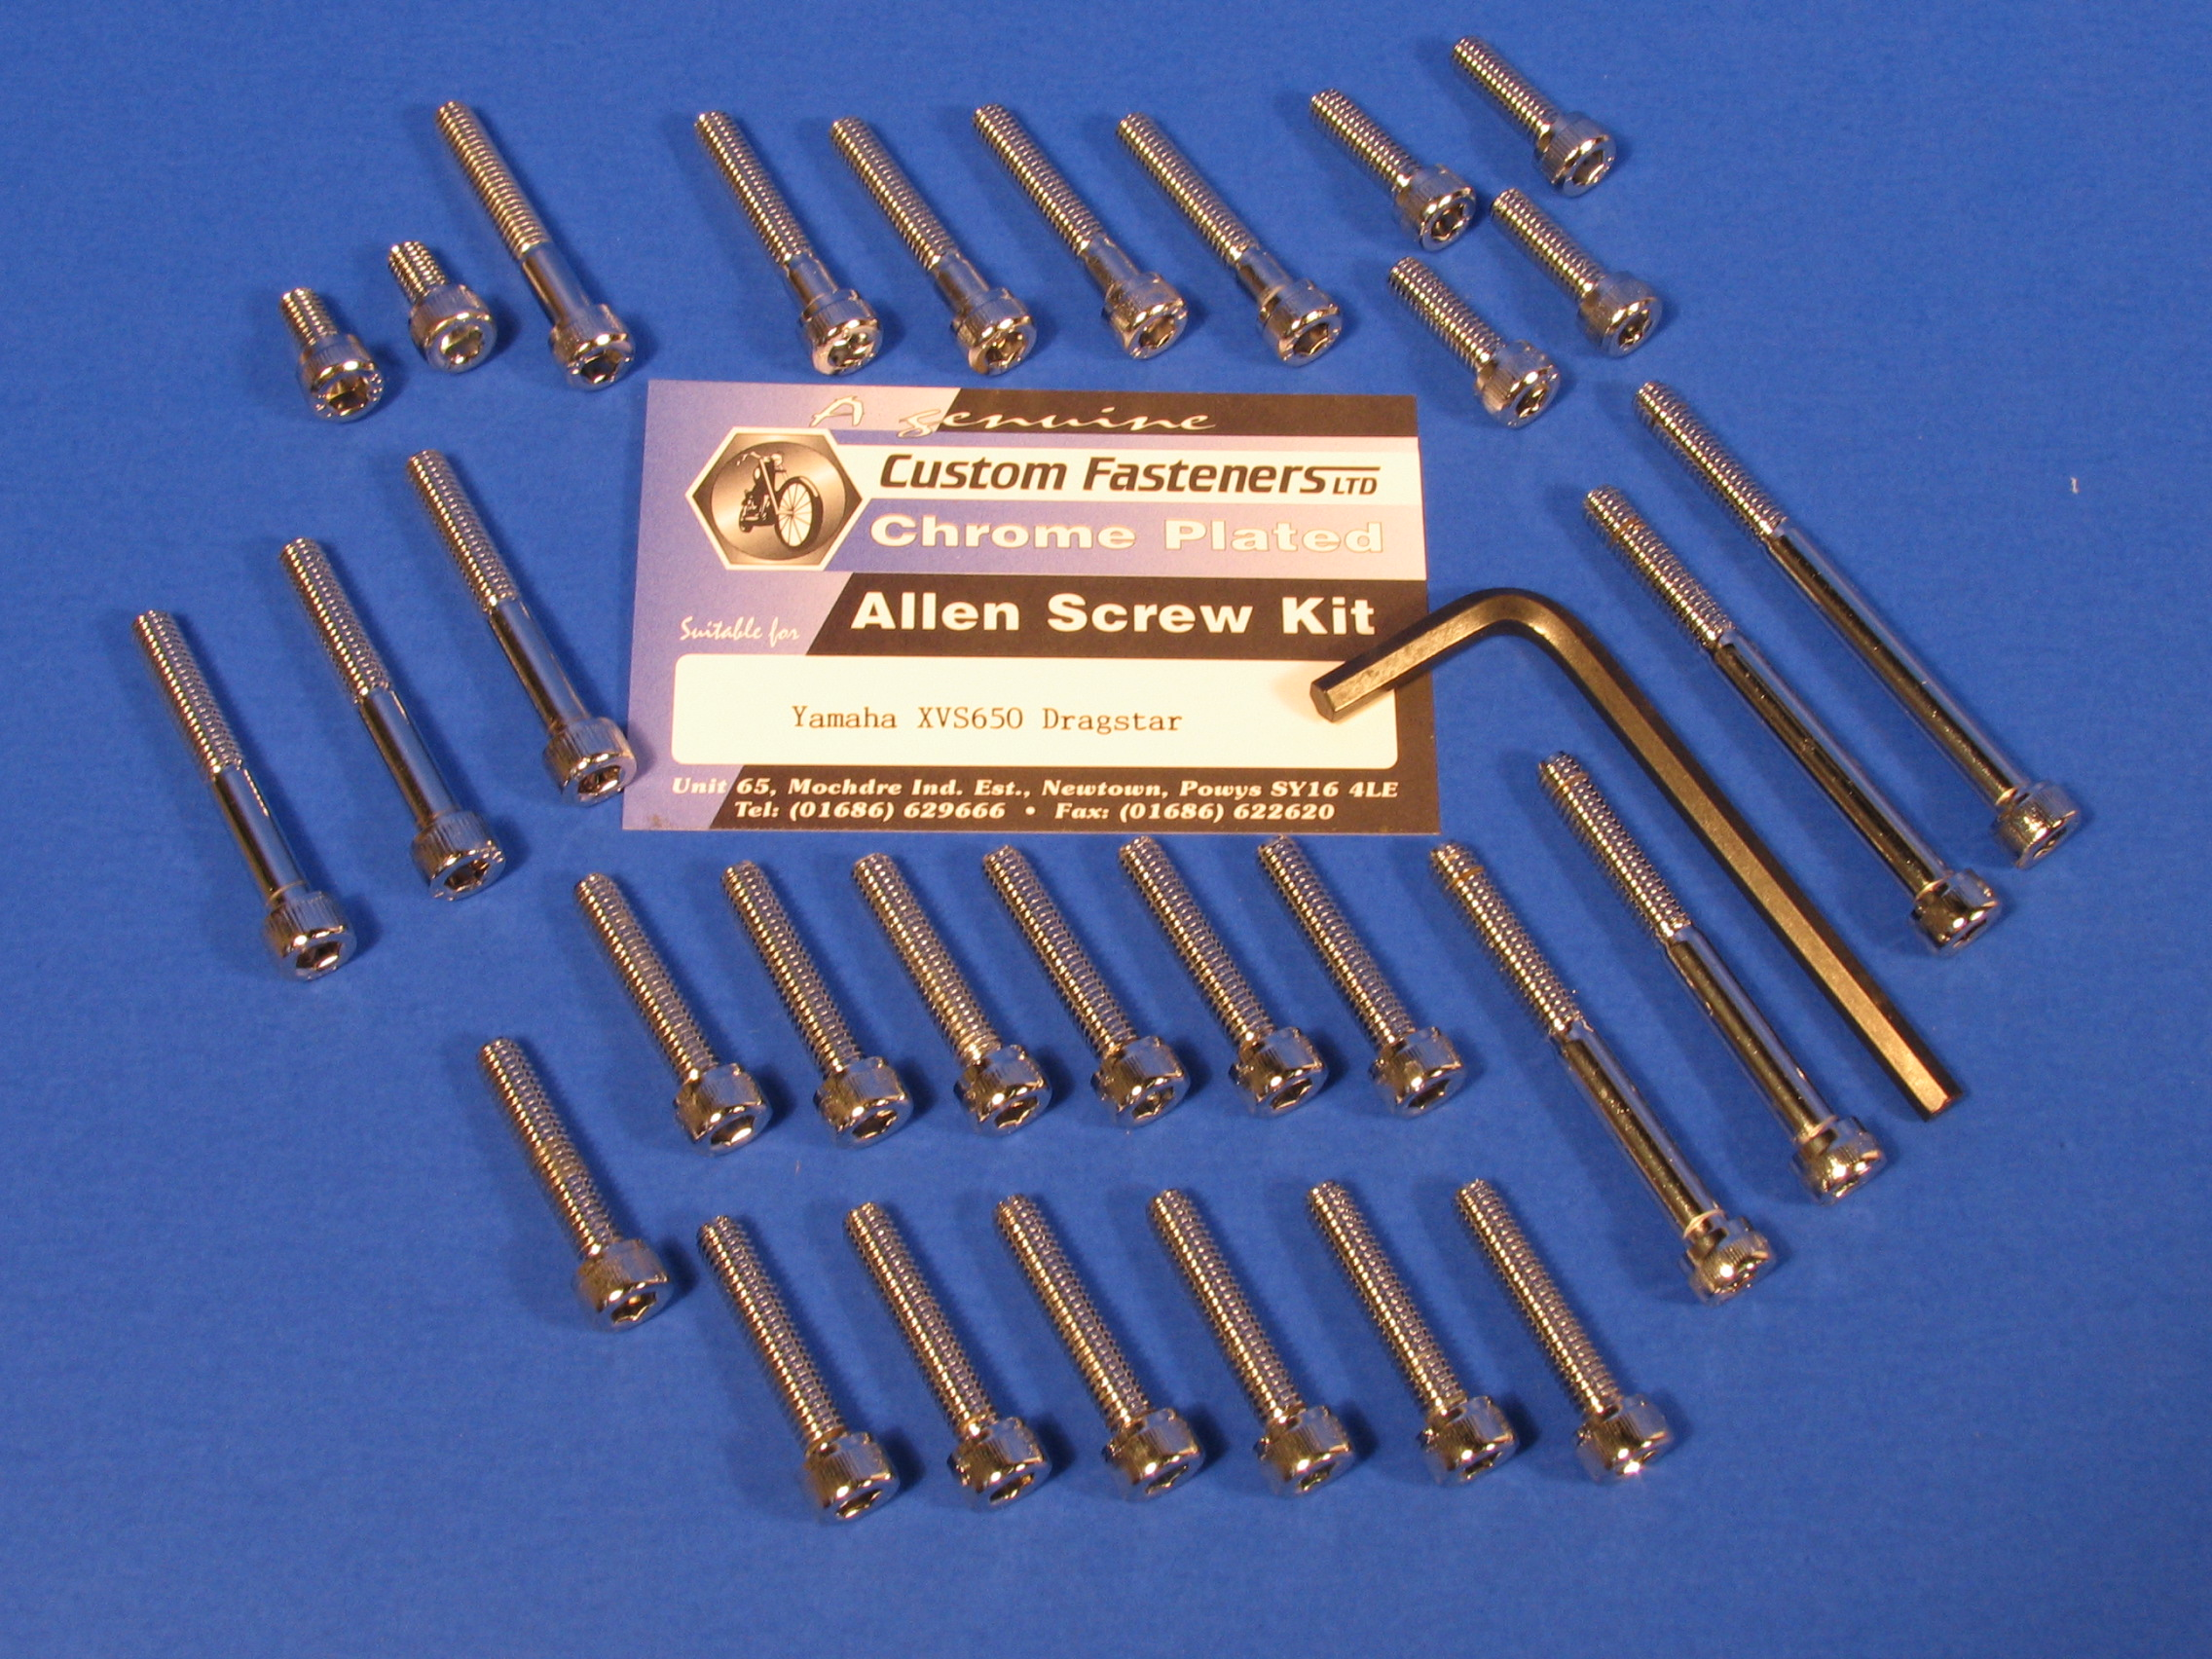 Royal Enfield Allen Screw Kits